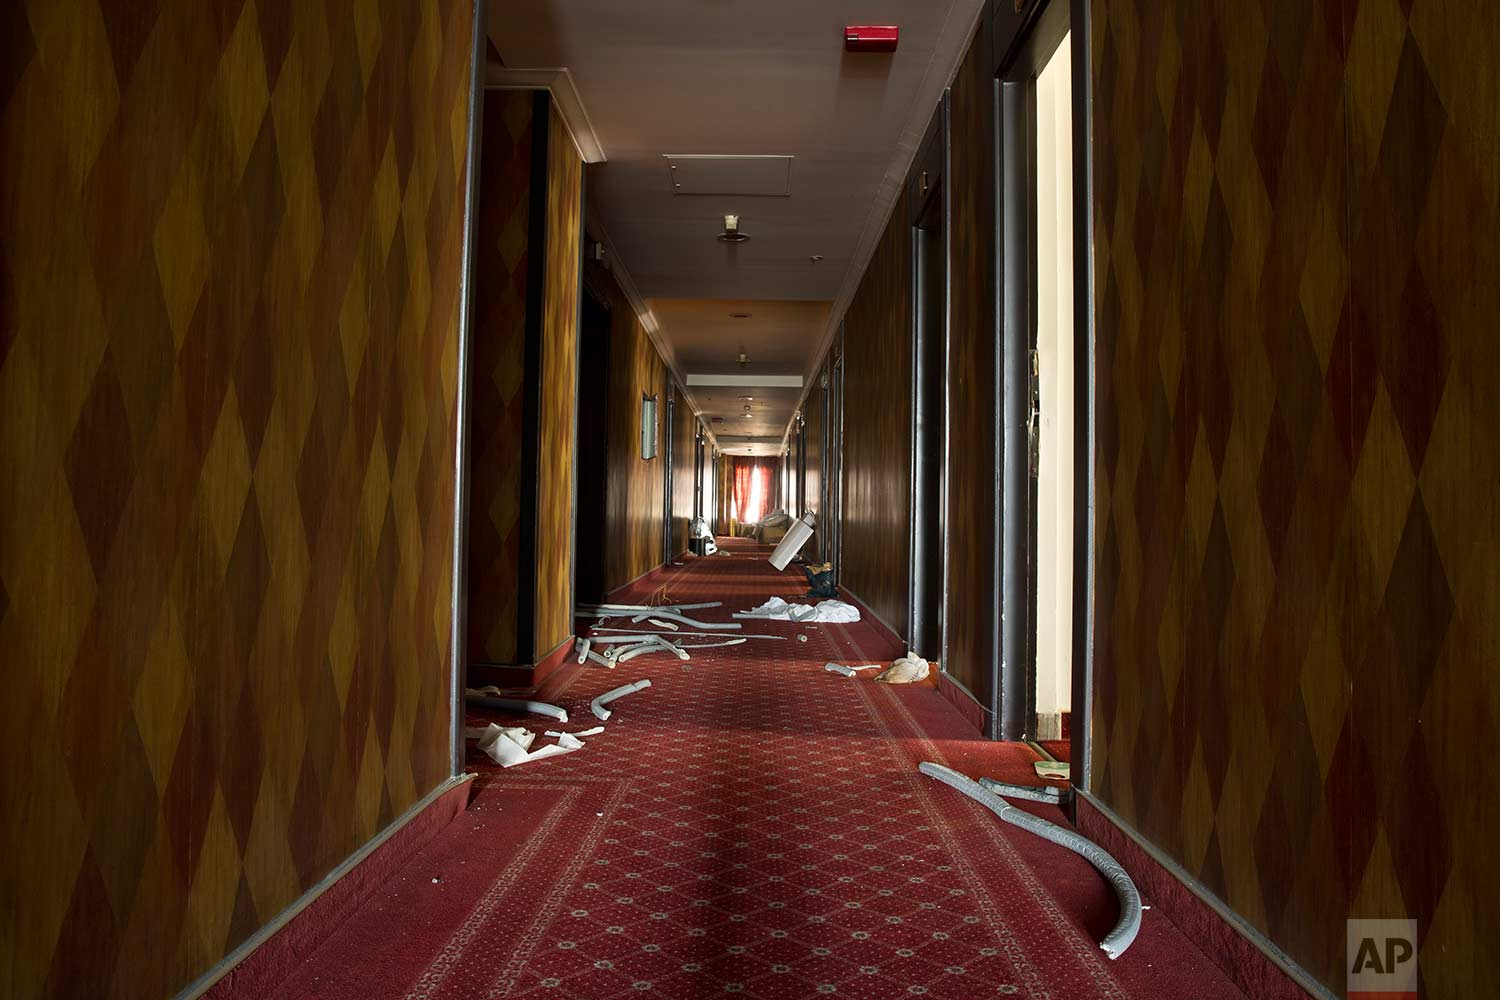 A corridor of the former Hesperia Hotel, which closed abruptly during Greece's financial crisis. (AP Photo/Petros Giannakouris)